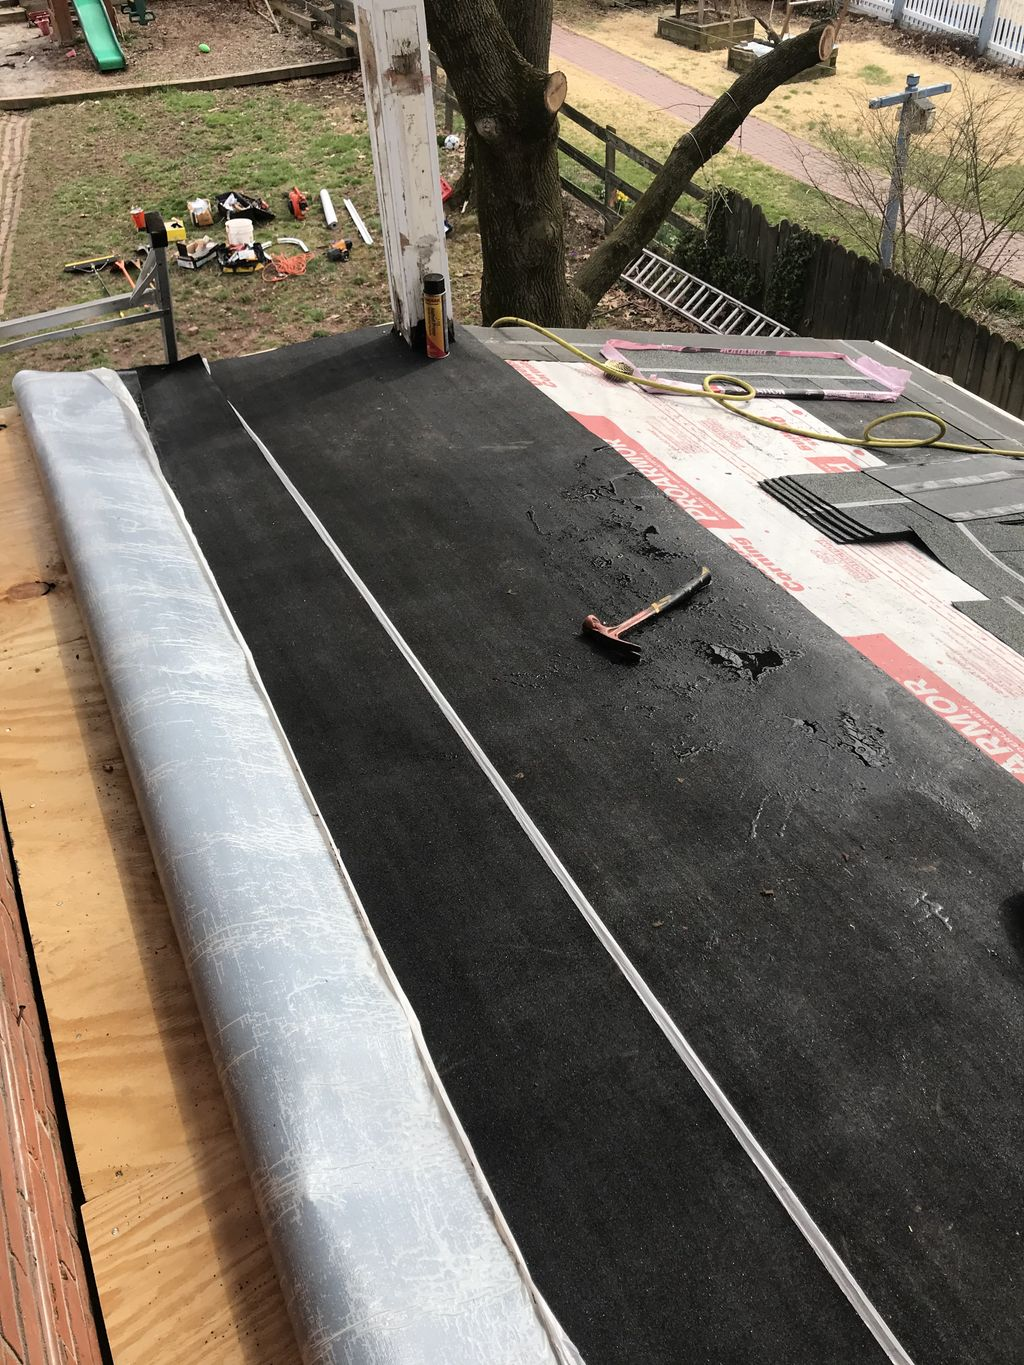 Flat transitioning into shingle total deck replacement